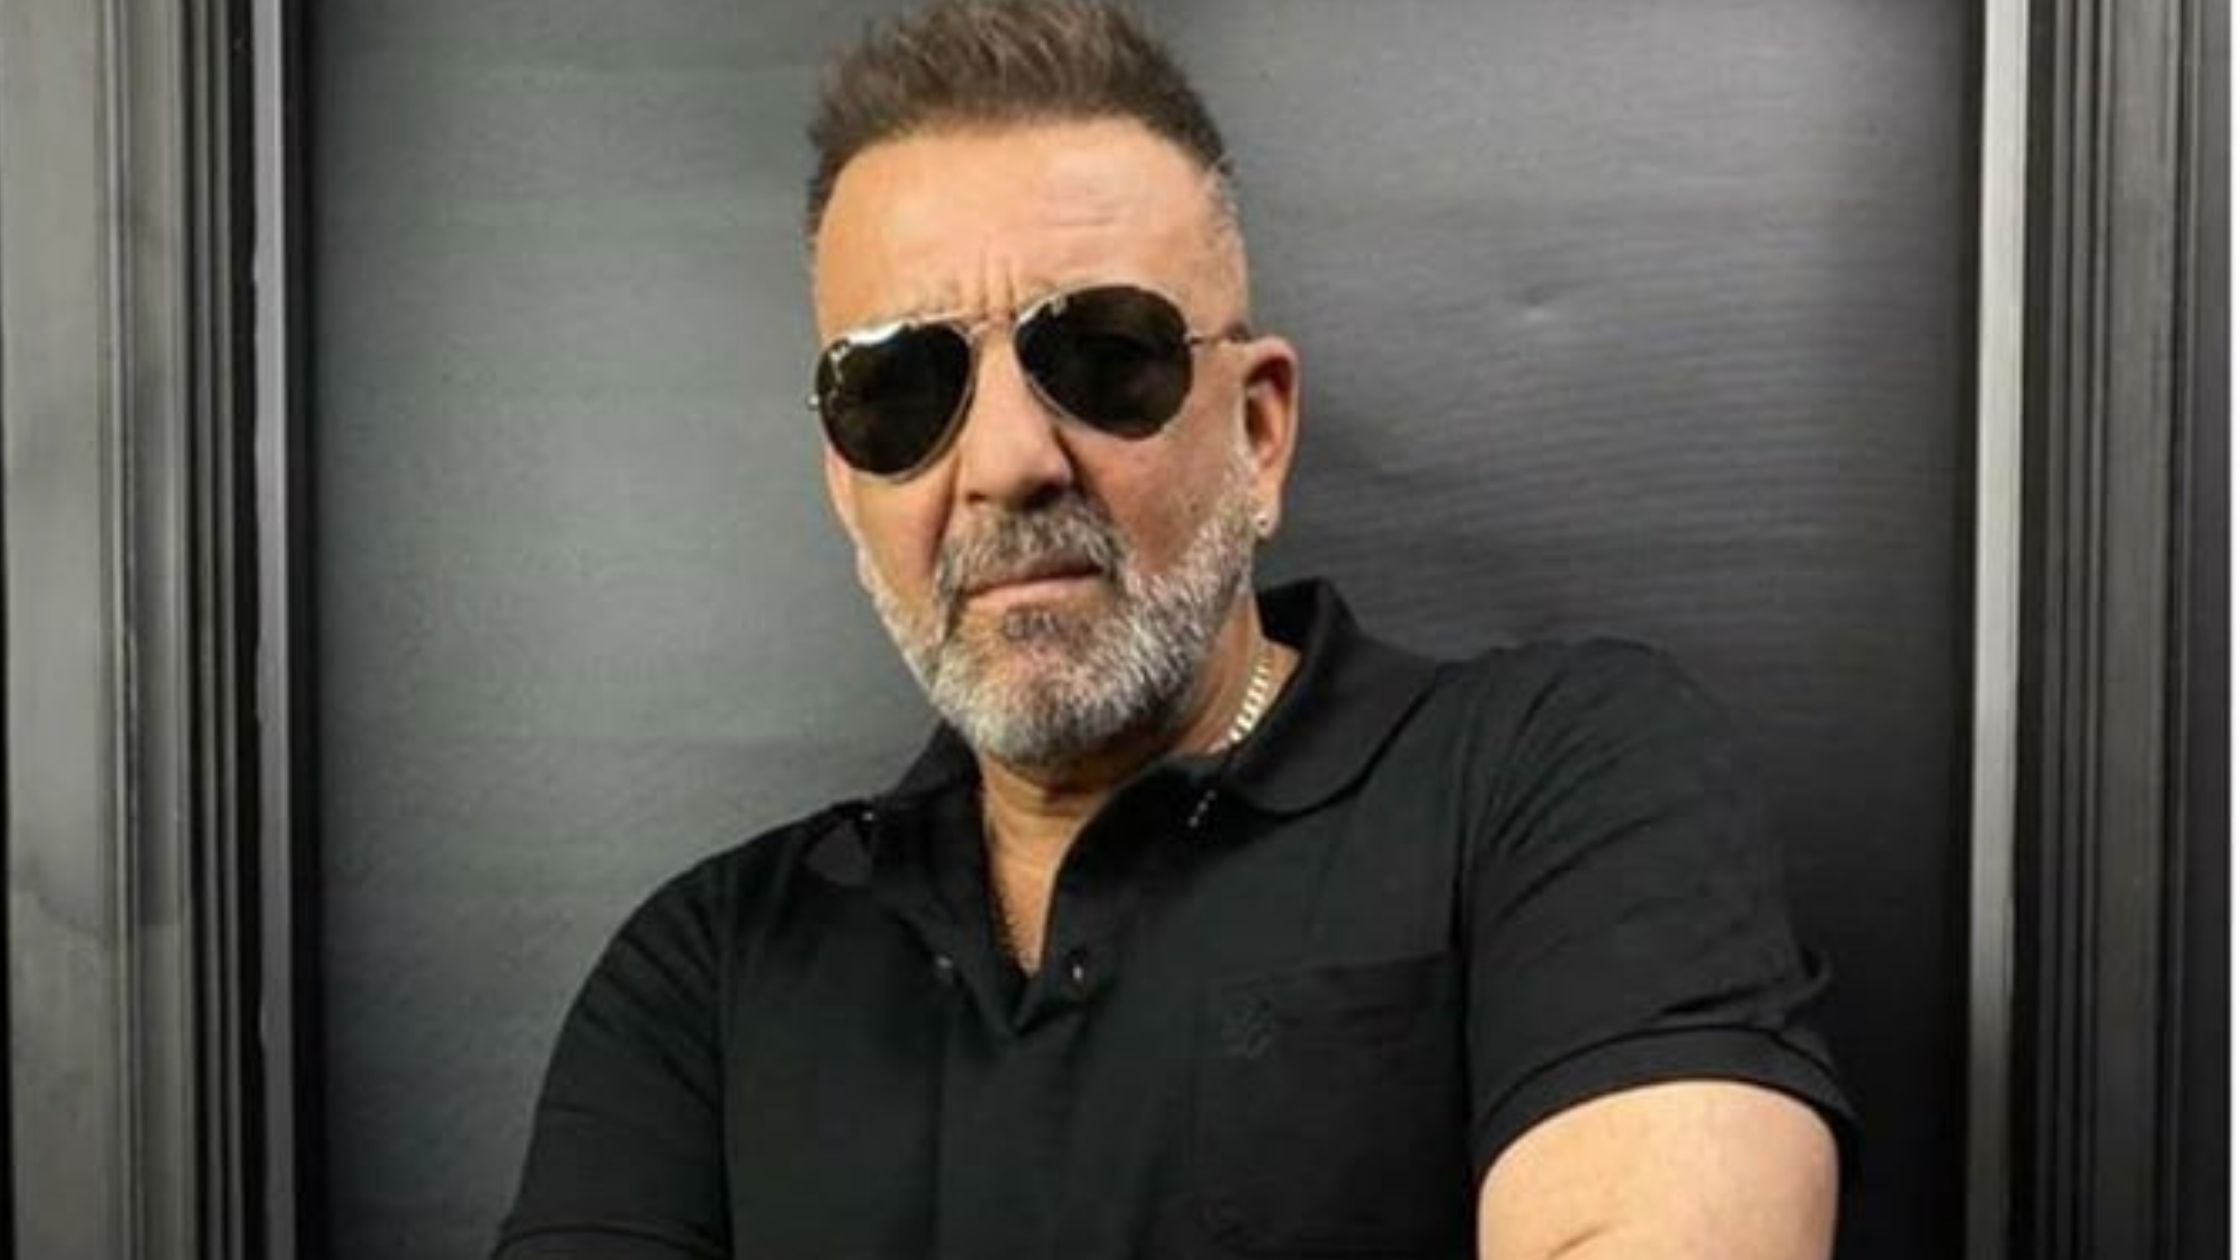 SANJAY DUTT HEALTH UPDATE: FAMILY MEMBER SAYS HE IS